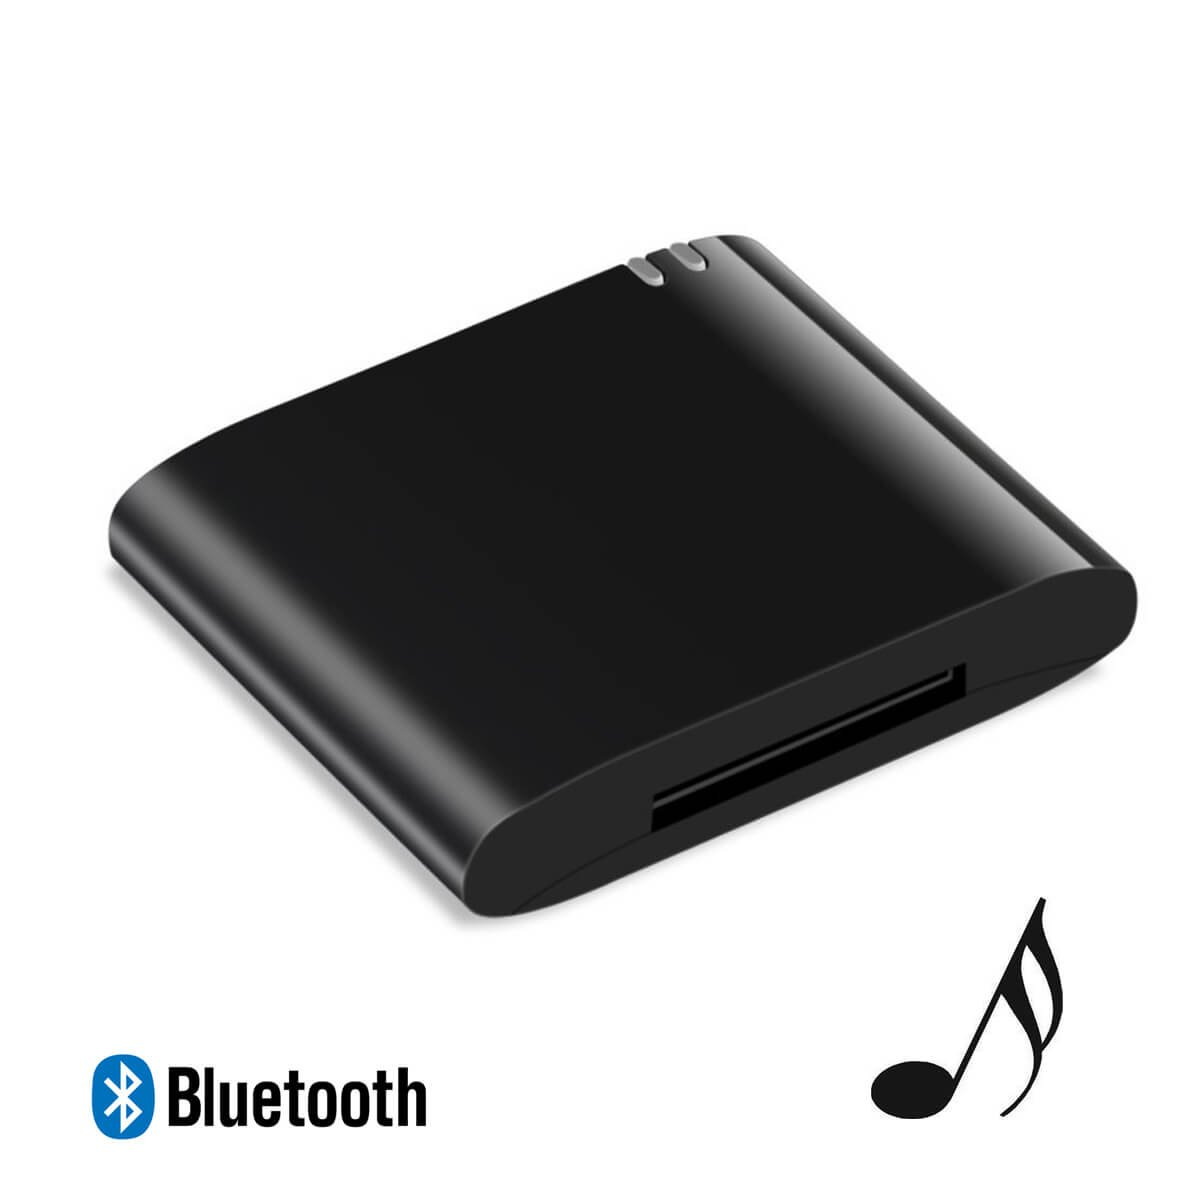 JOOKKI 30 Pin Bluetooth Music Receiver Wrieless Audio Adapter V4.1 for Bose Sounddock,Home Stereo,30 Pin Dock Speaker(Black)